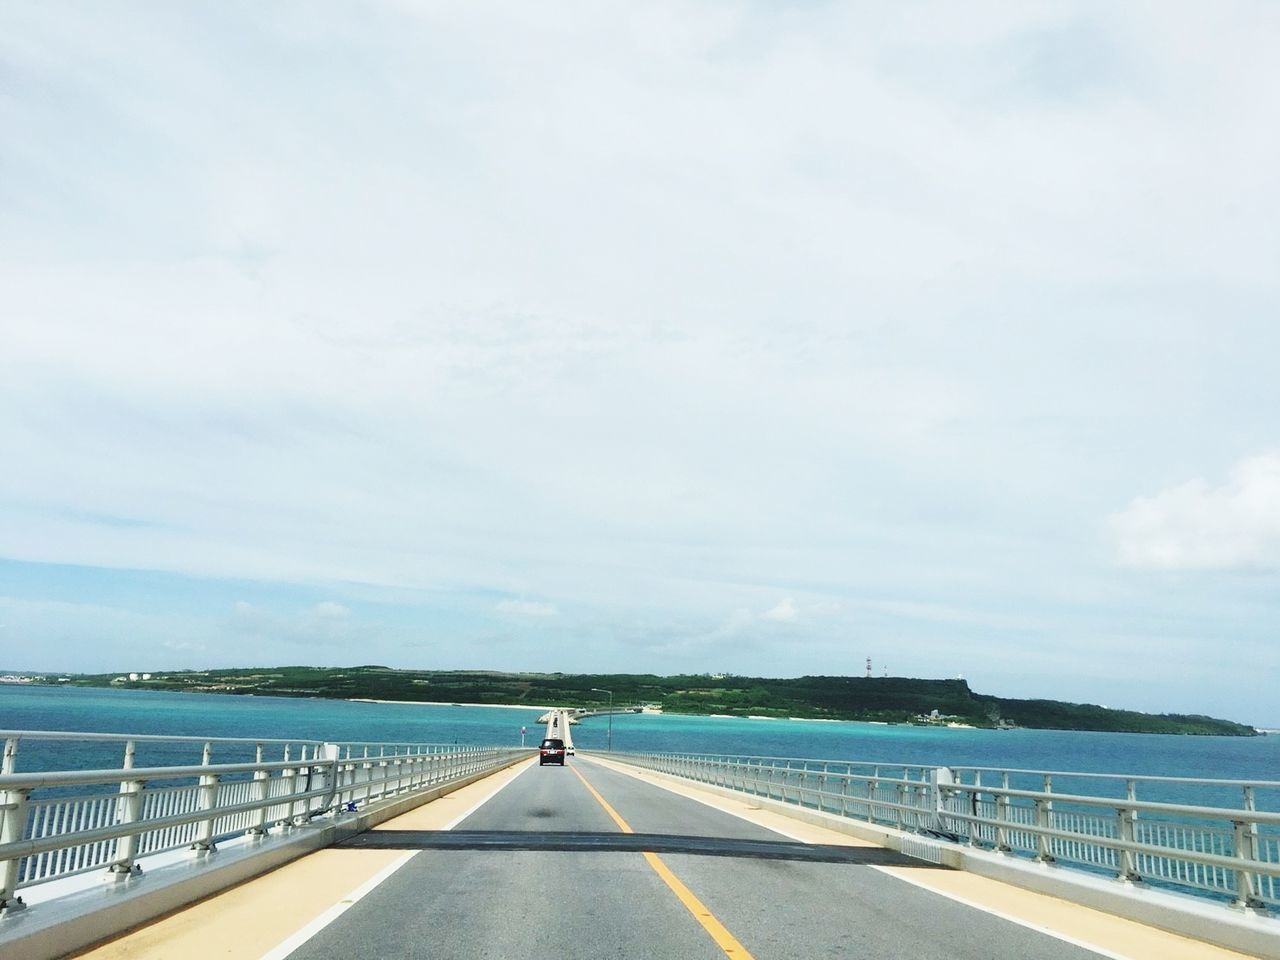 road, transportation, road marking, sky, the way forward, cloud - sky, railing, highway, day, sea, outdoors, scenics, water, no people, nature, beauty in nature